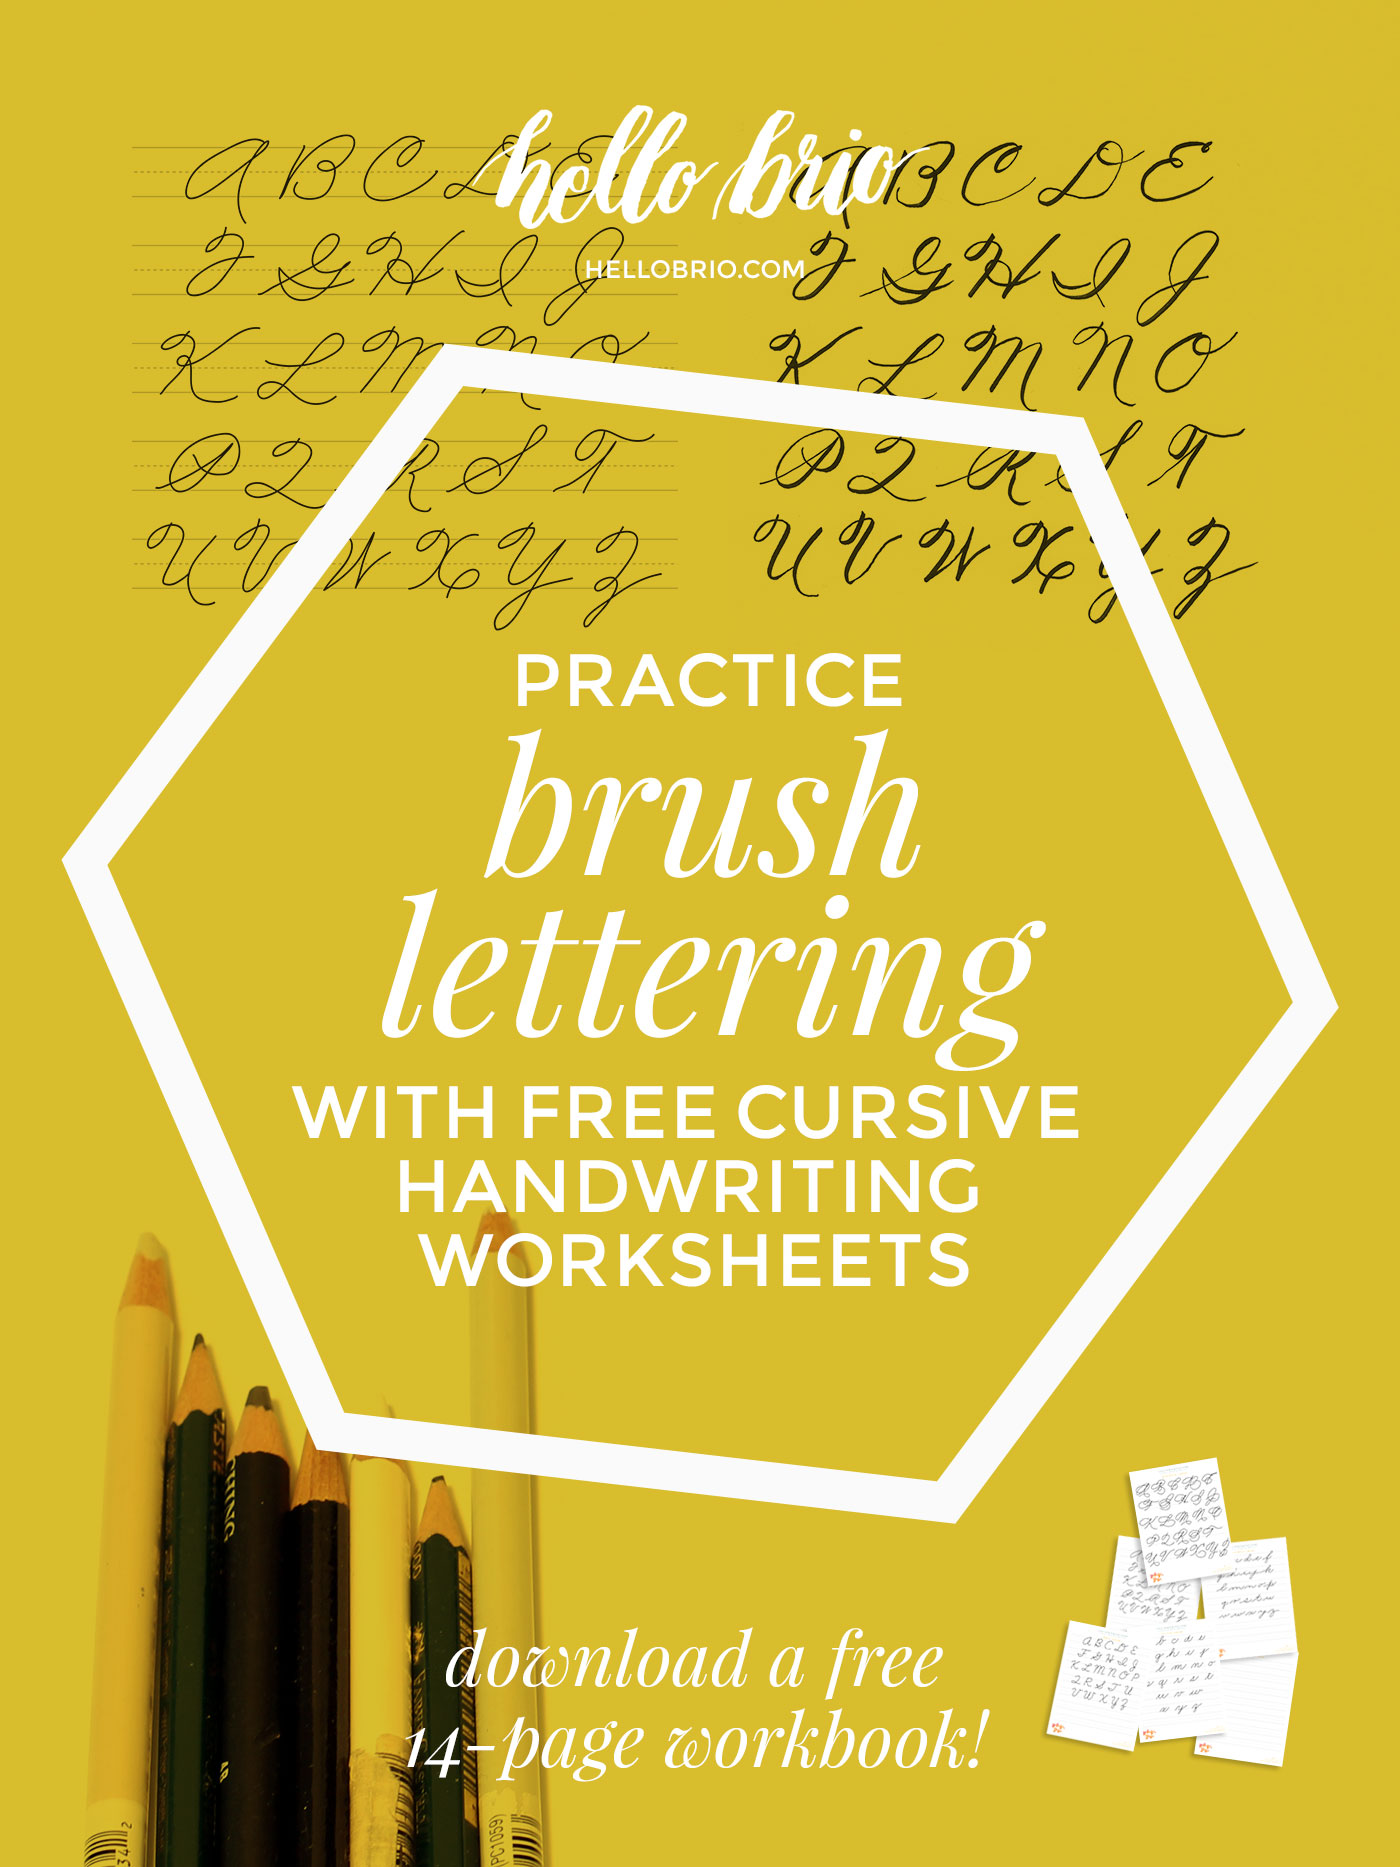 Learn and practice brush lettering with free cursive handwriting worksheets. Develop your personal lettering style by practicing different cursive styles!